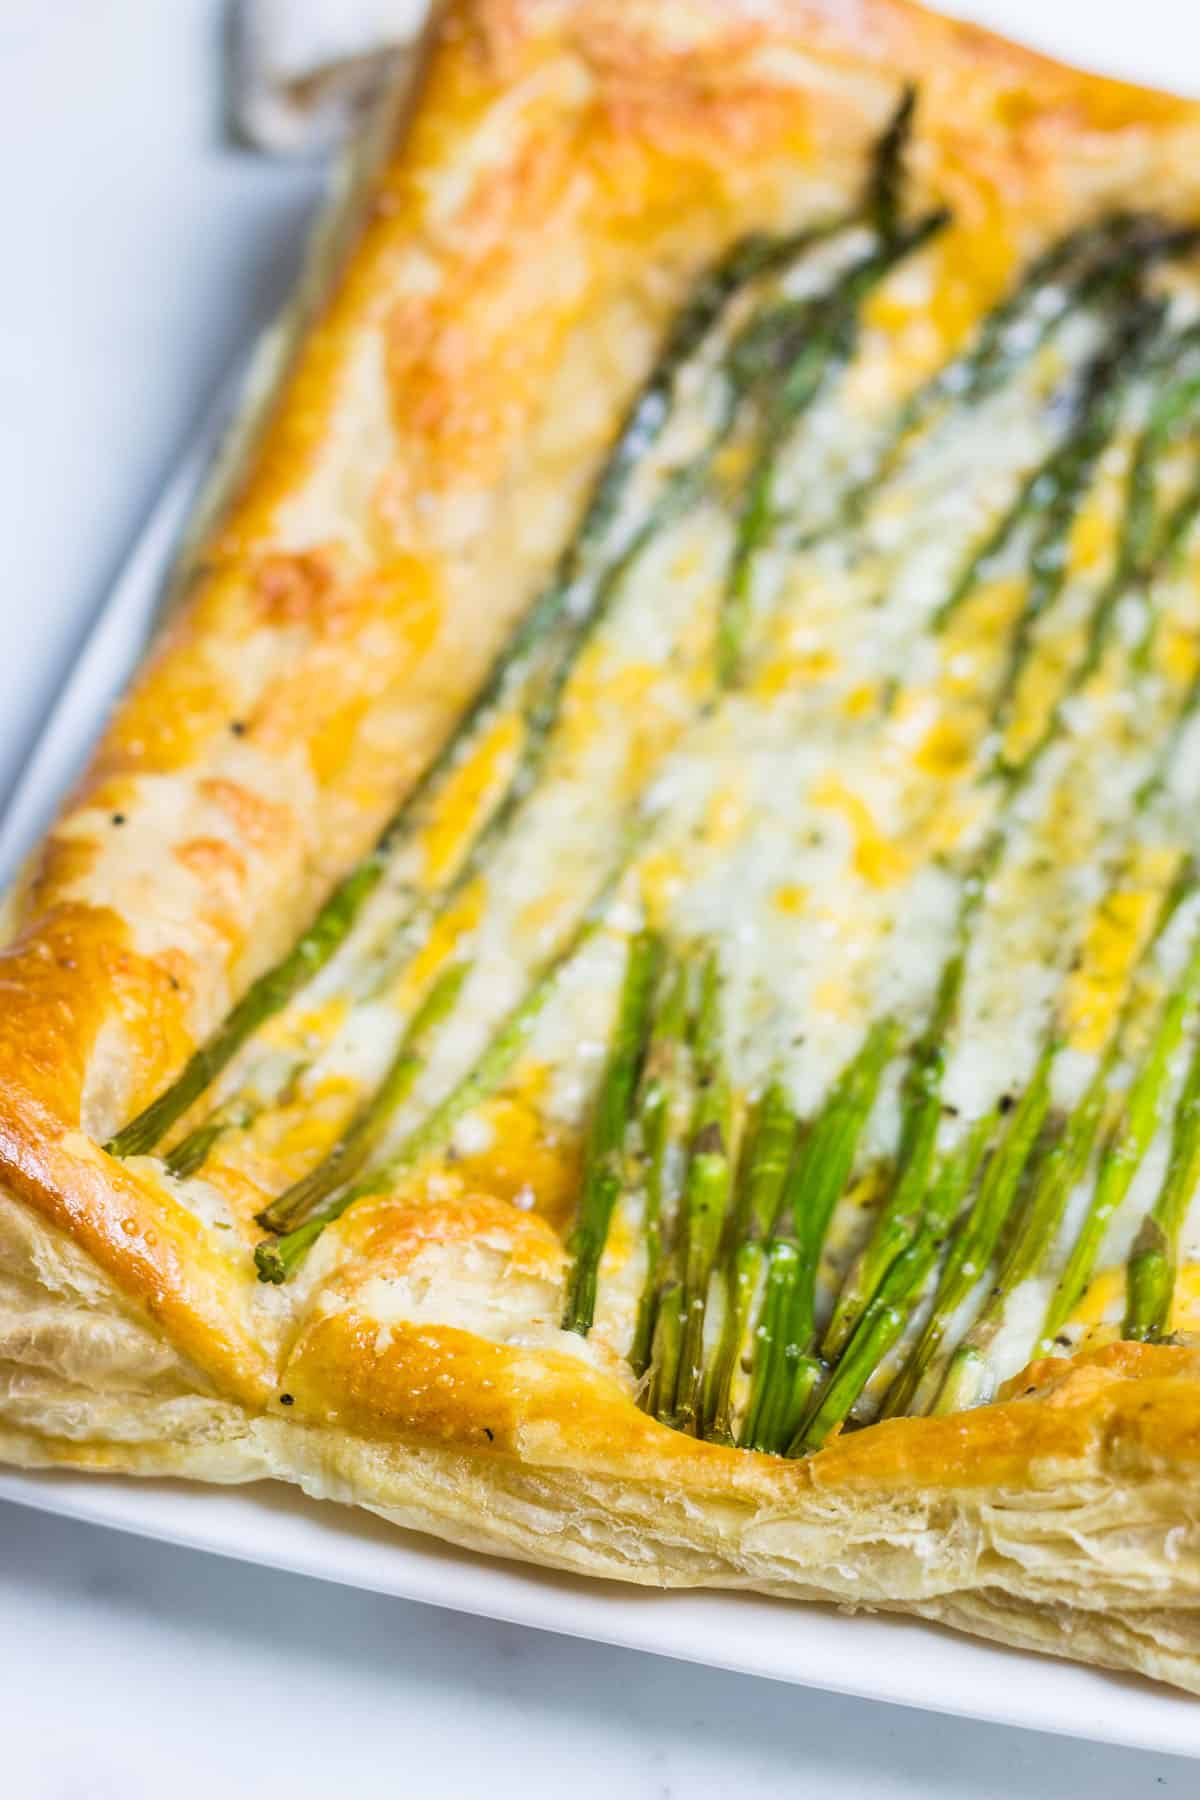 Asparagus Tart: a quick and simple appetizer or lunch using puff pastry, fresh asparagus, and cheese. Recipe via MonPetitFour.com